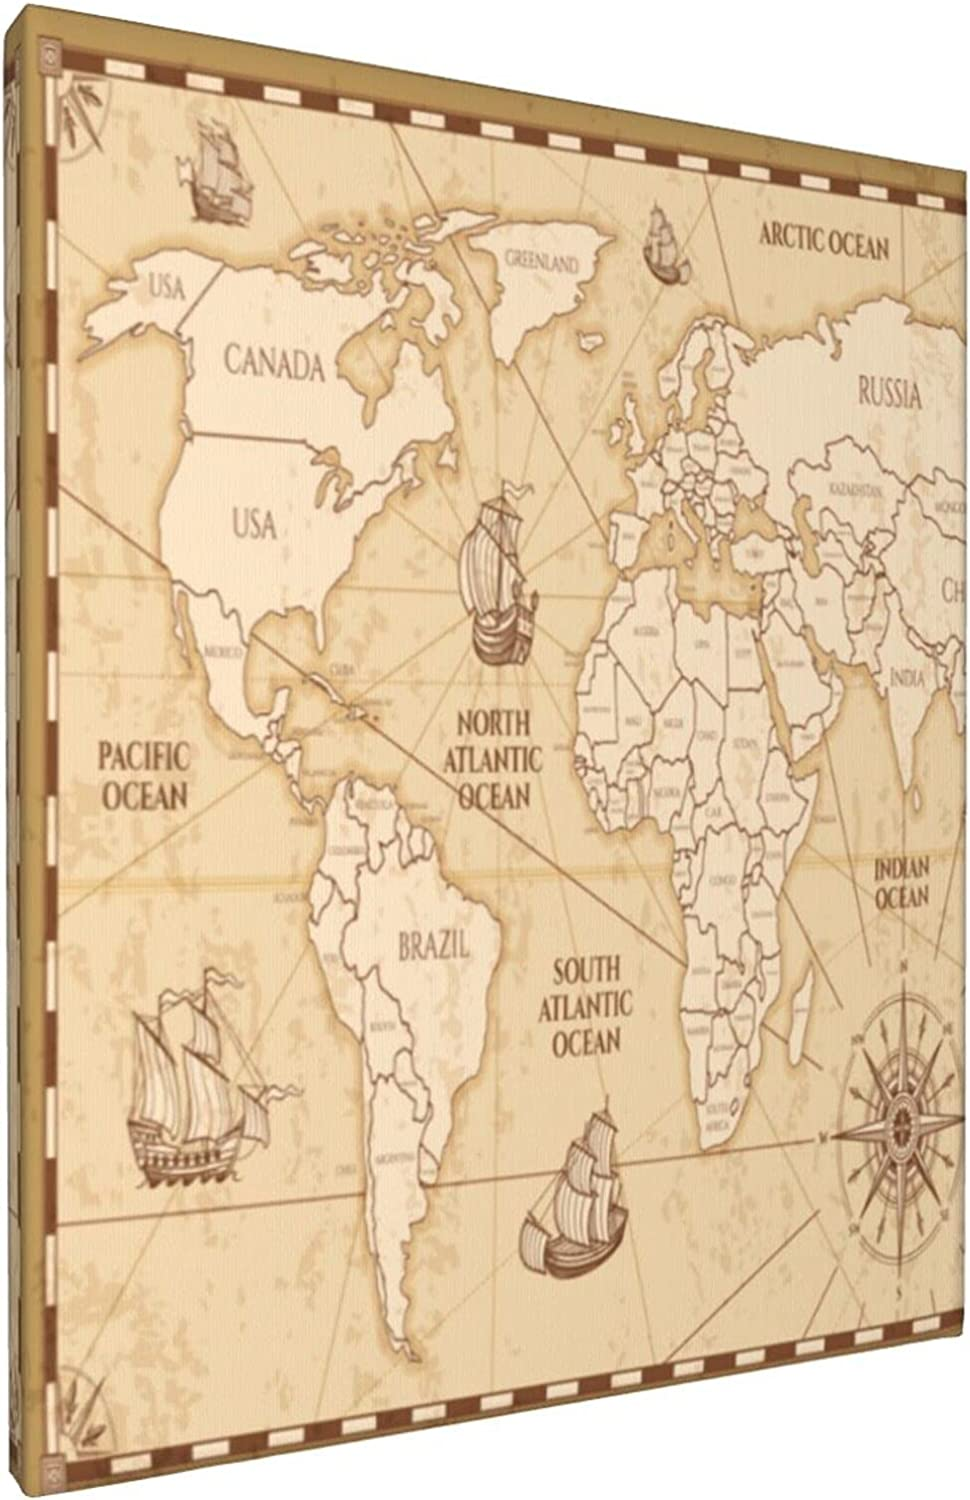 Antique Limited price sale 25% OFF World Map Countries Canvas Decorative Frameless Art Wall